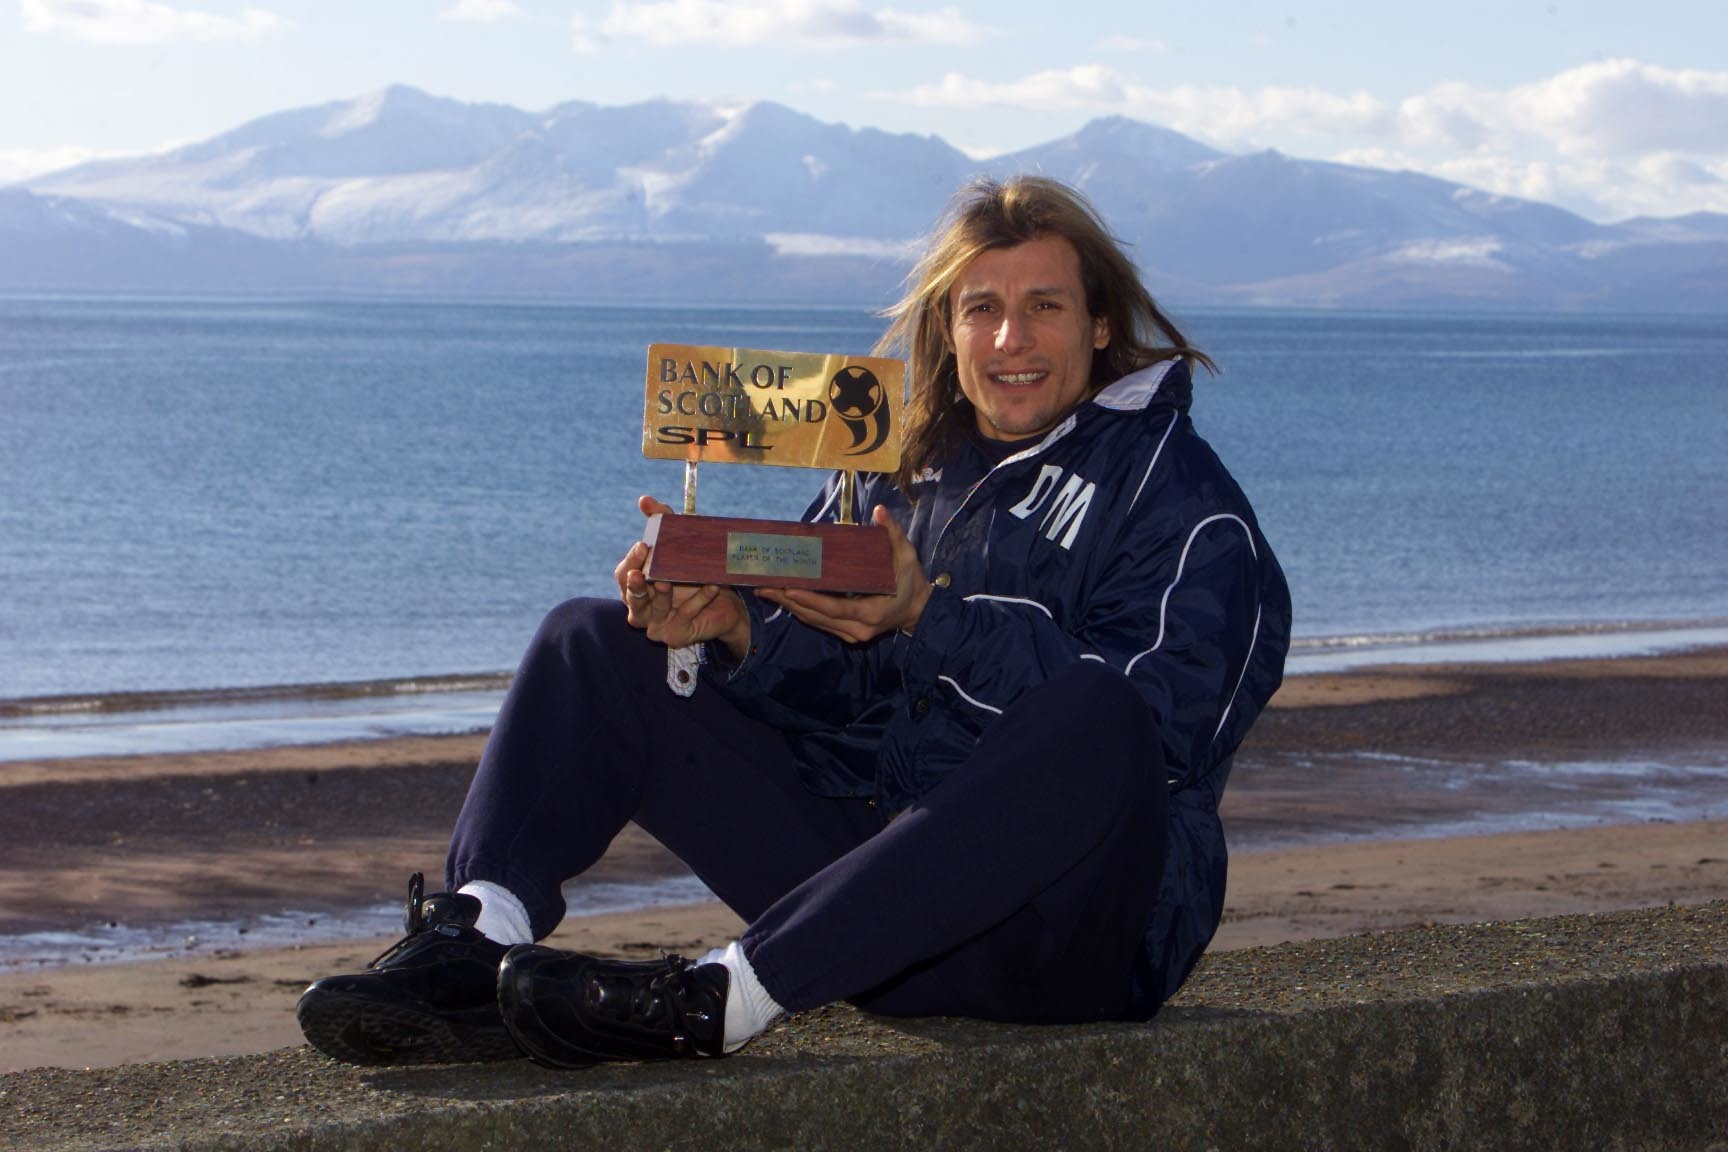 Claudio Caniggia was revered for his football at Dundee and his attitude.